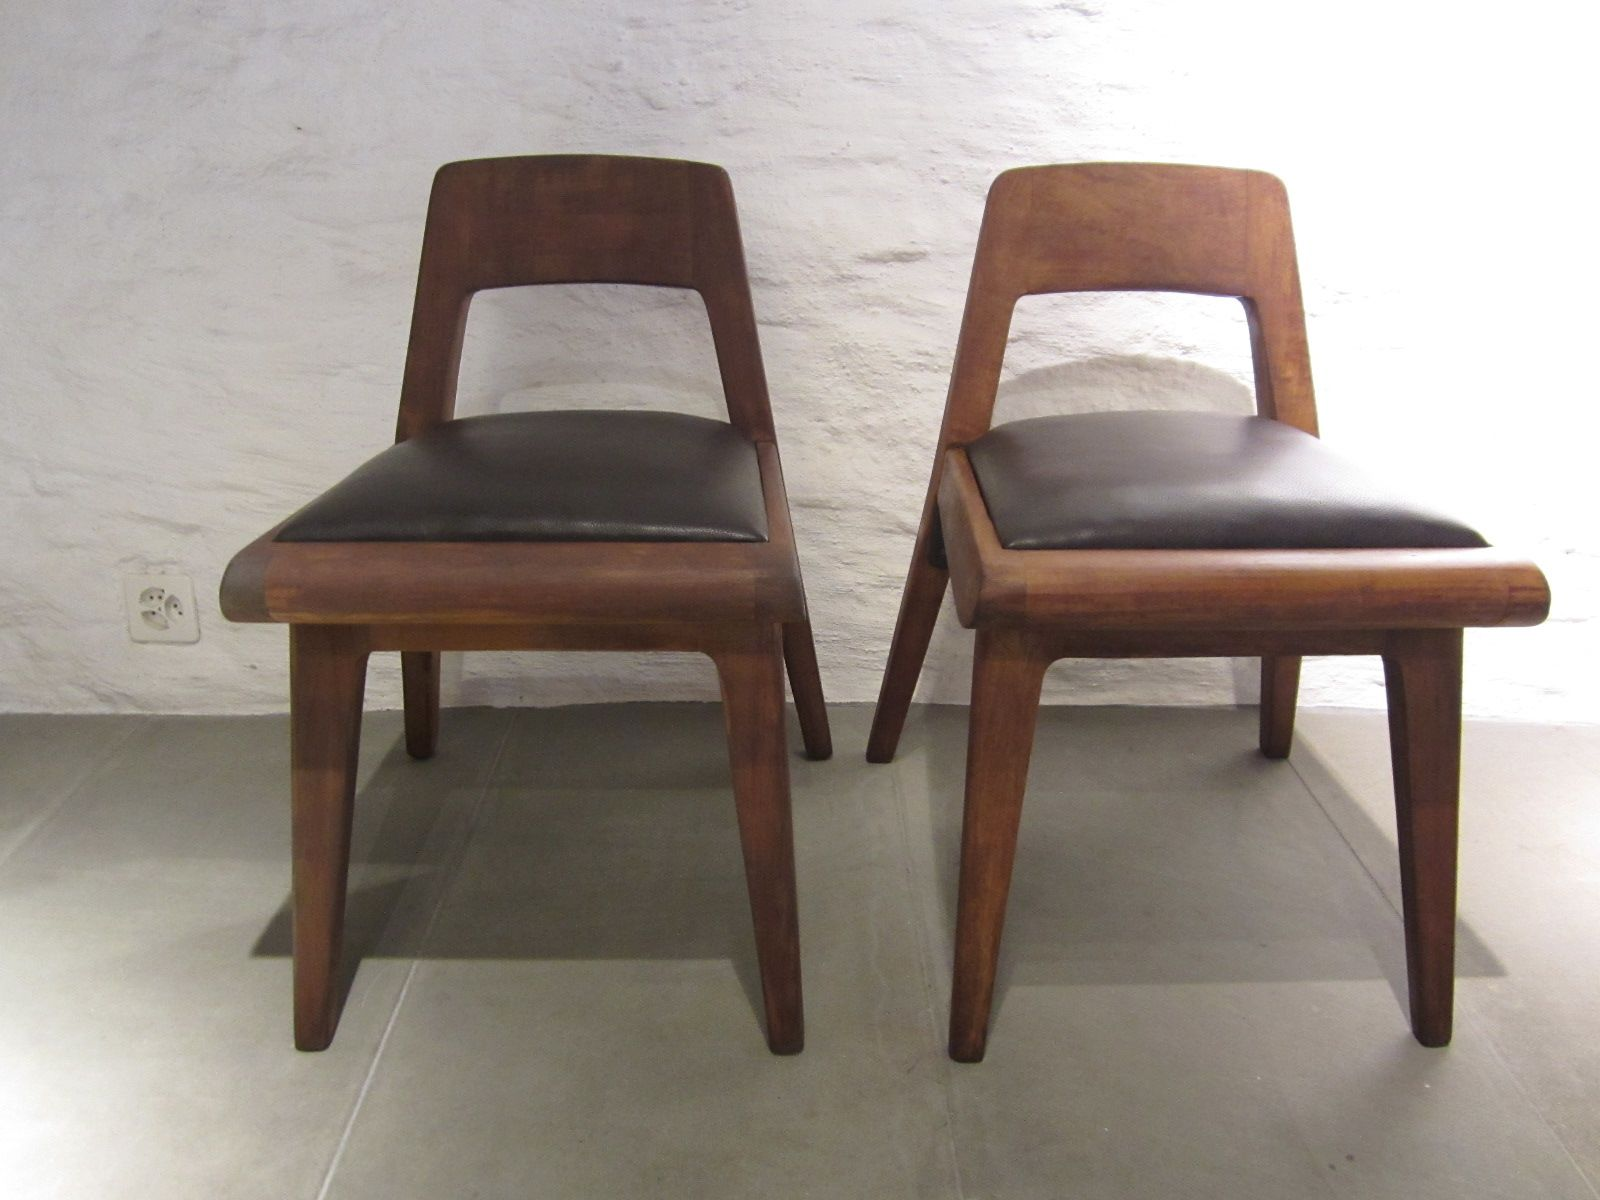 Superb img of Vintage Wooden Chairs Set of 4 for sale at Pamono with #8C5F3F color and 1600x1200 pixels